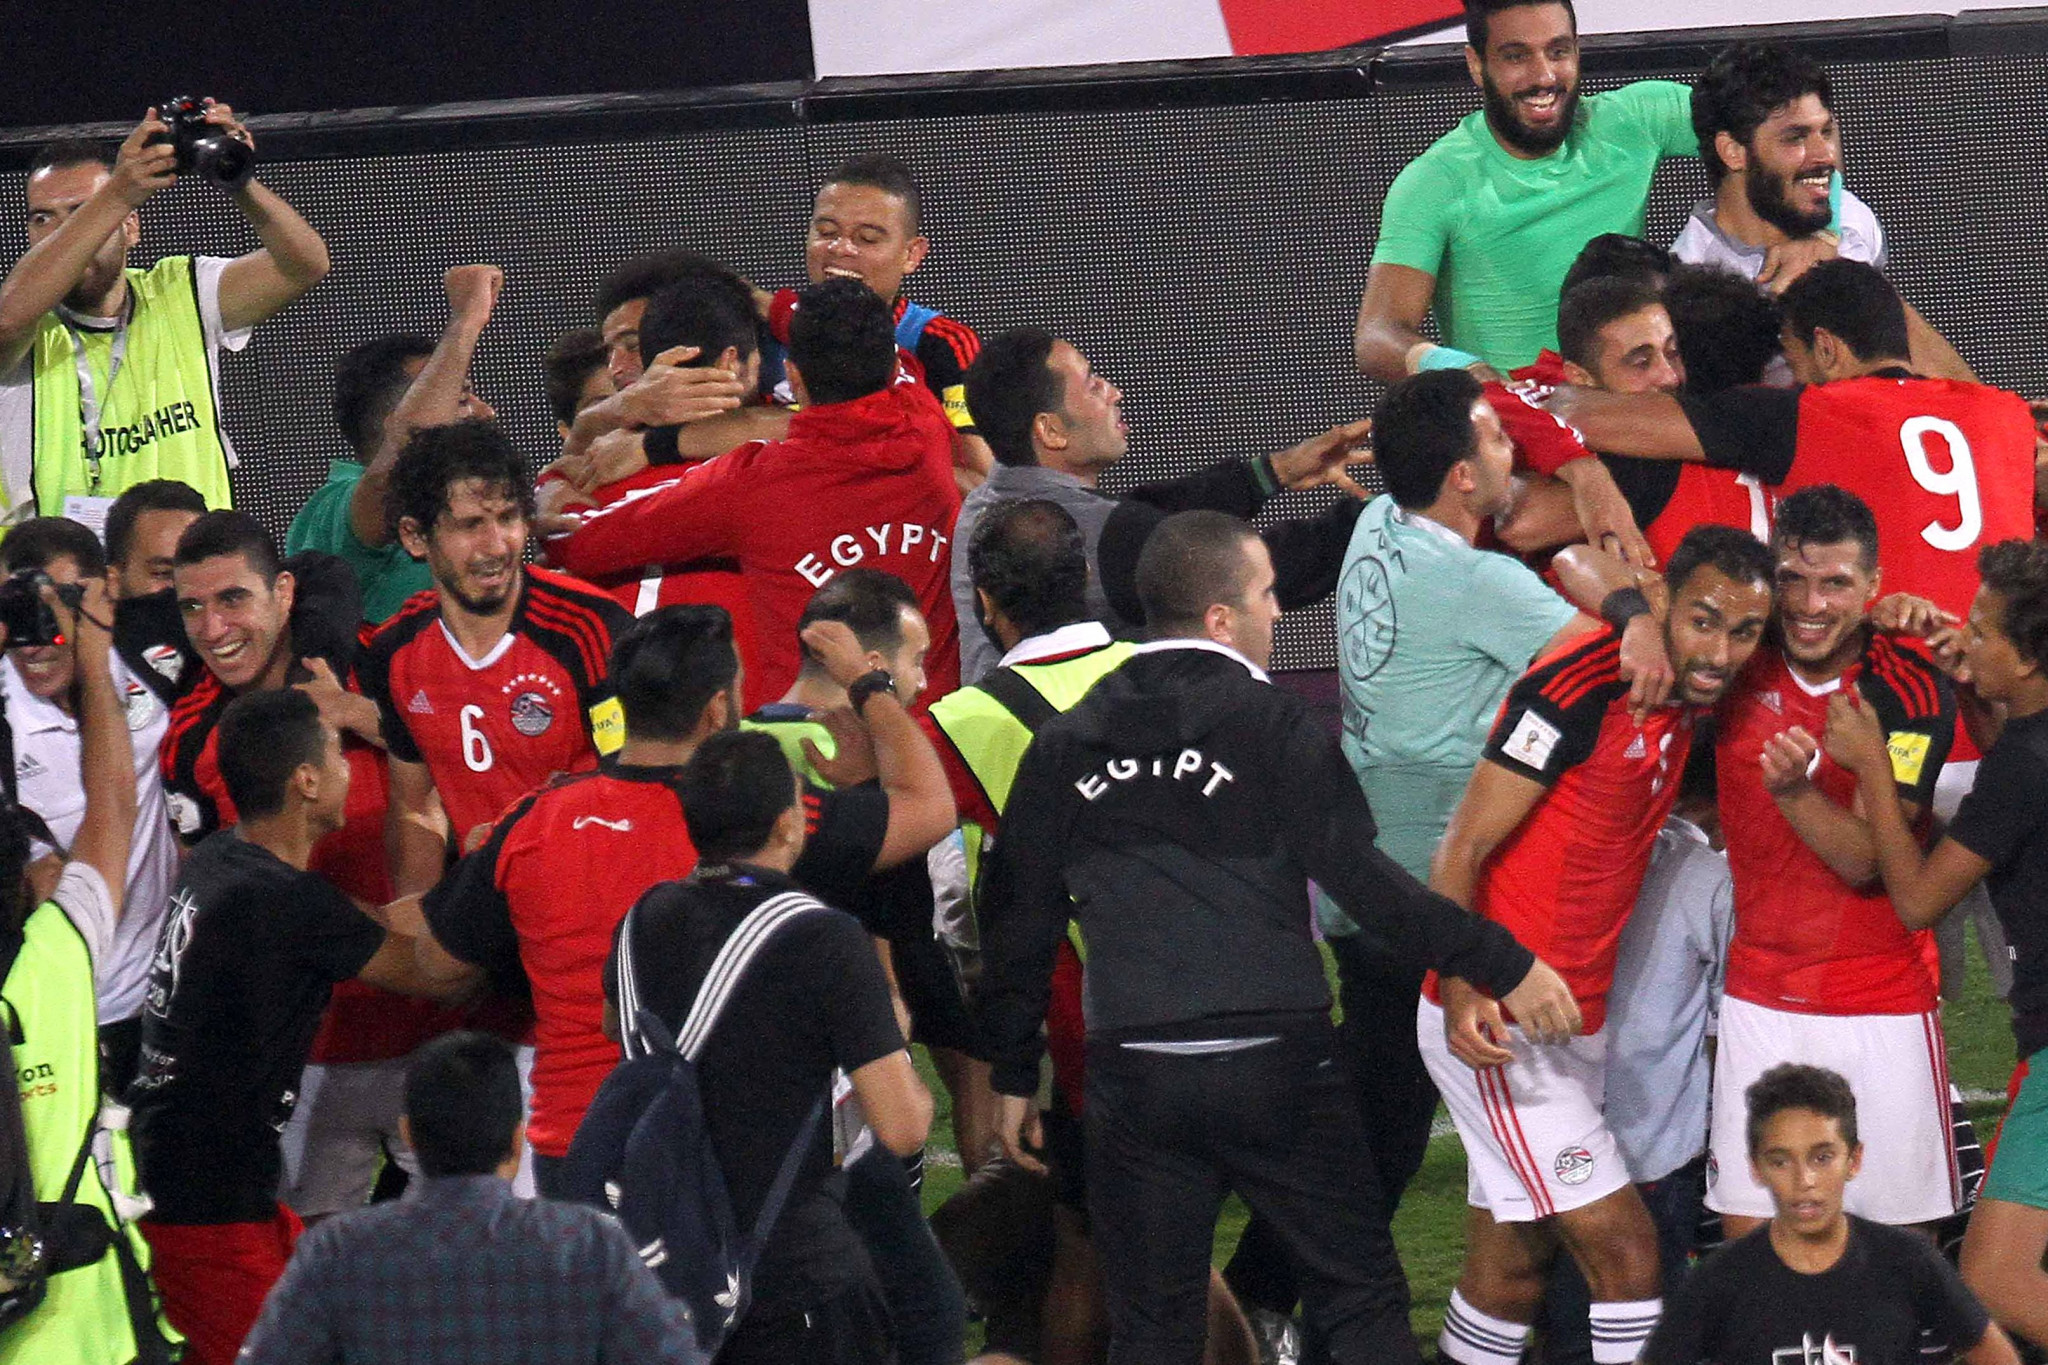 There were wild scenes of celebration on and off the pitch after Egypt beat Congo to qualify for the World Cup ©Getty Images